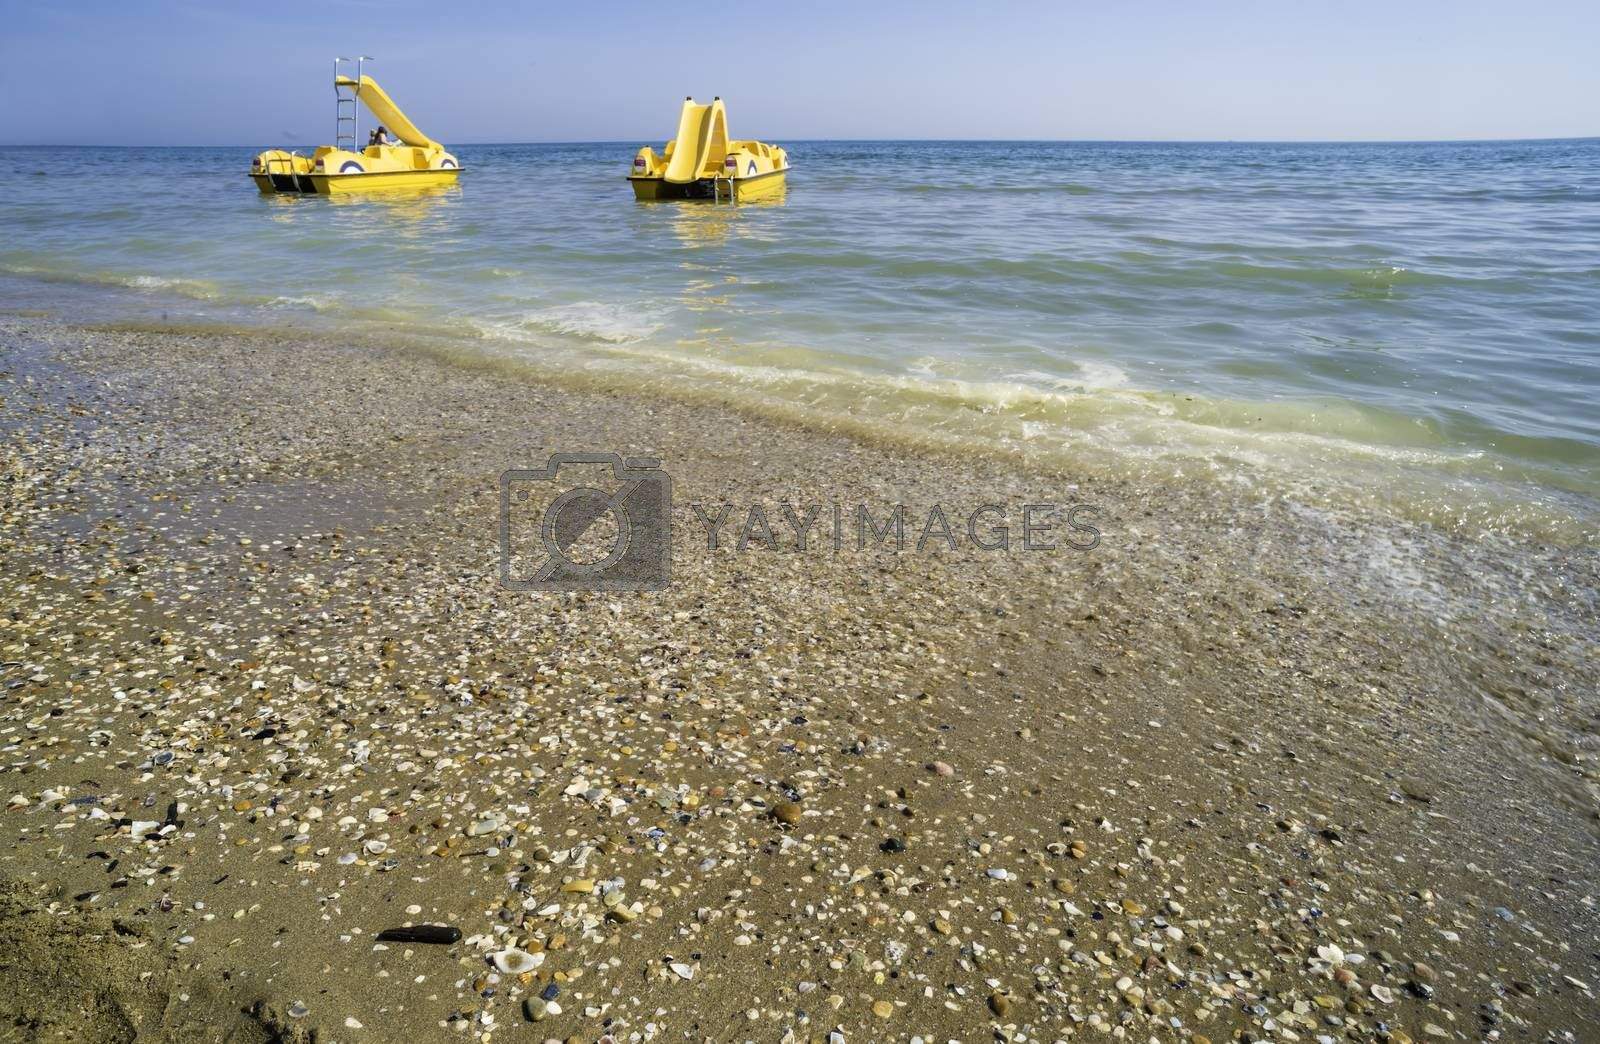 Yellow lifeboat on the beach. Italian beach